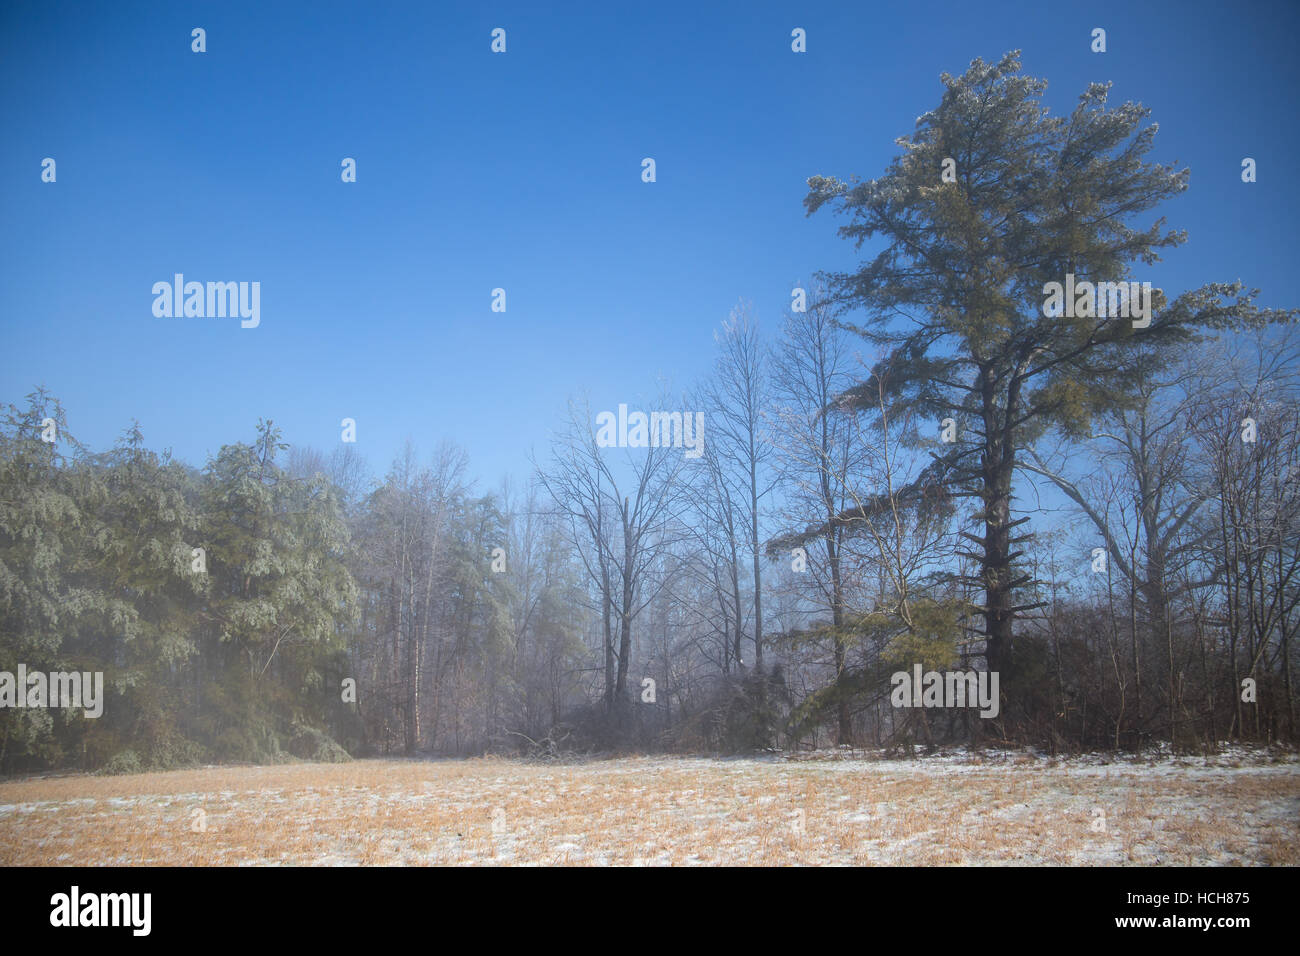 Icy field and ice covered trees with slight mist and blue skies - Stock Image